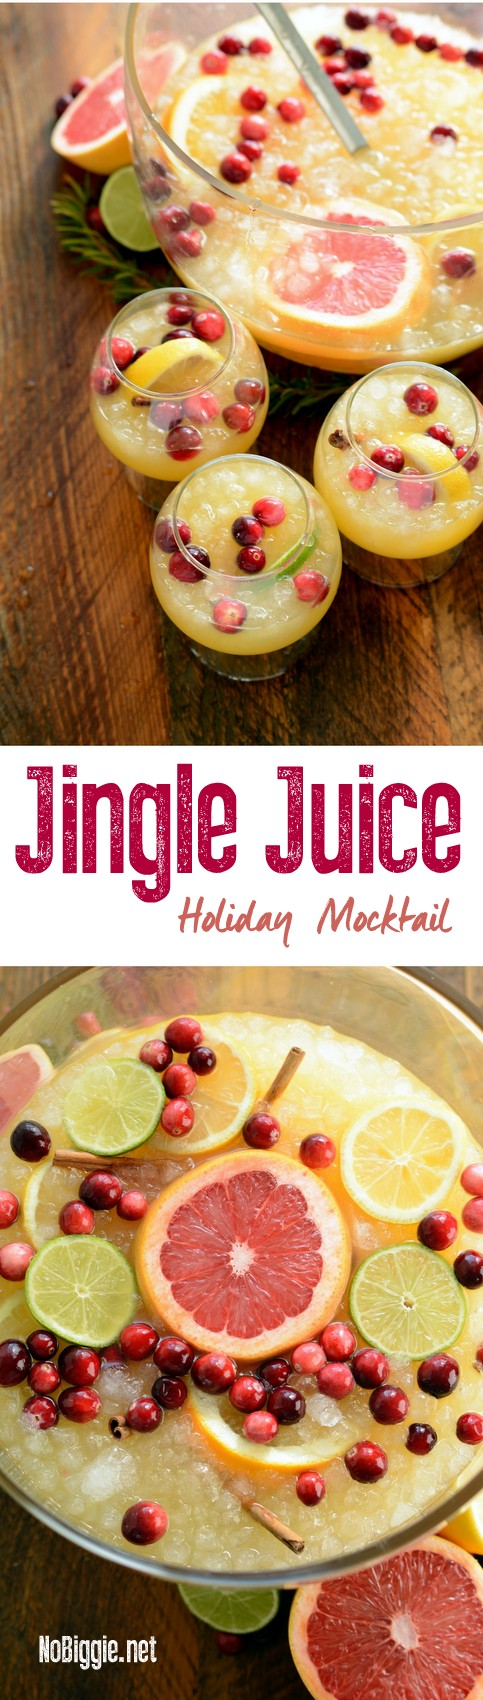 jingle juice holiday mocktail | NoBiggie.net